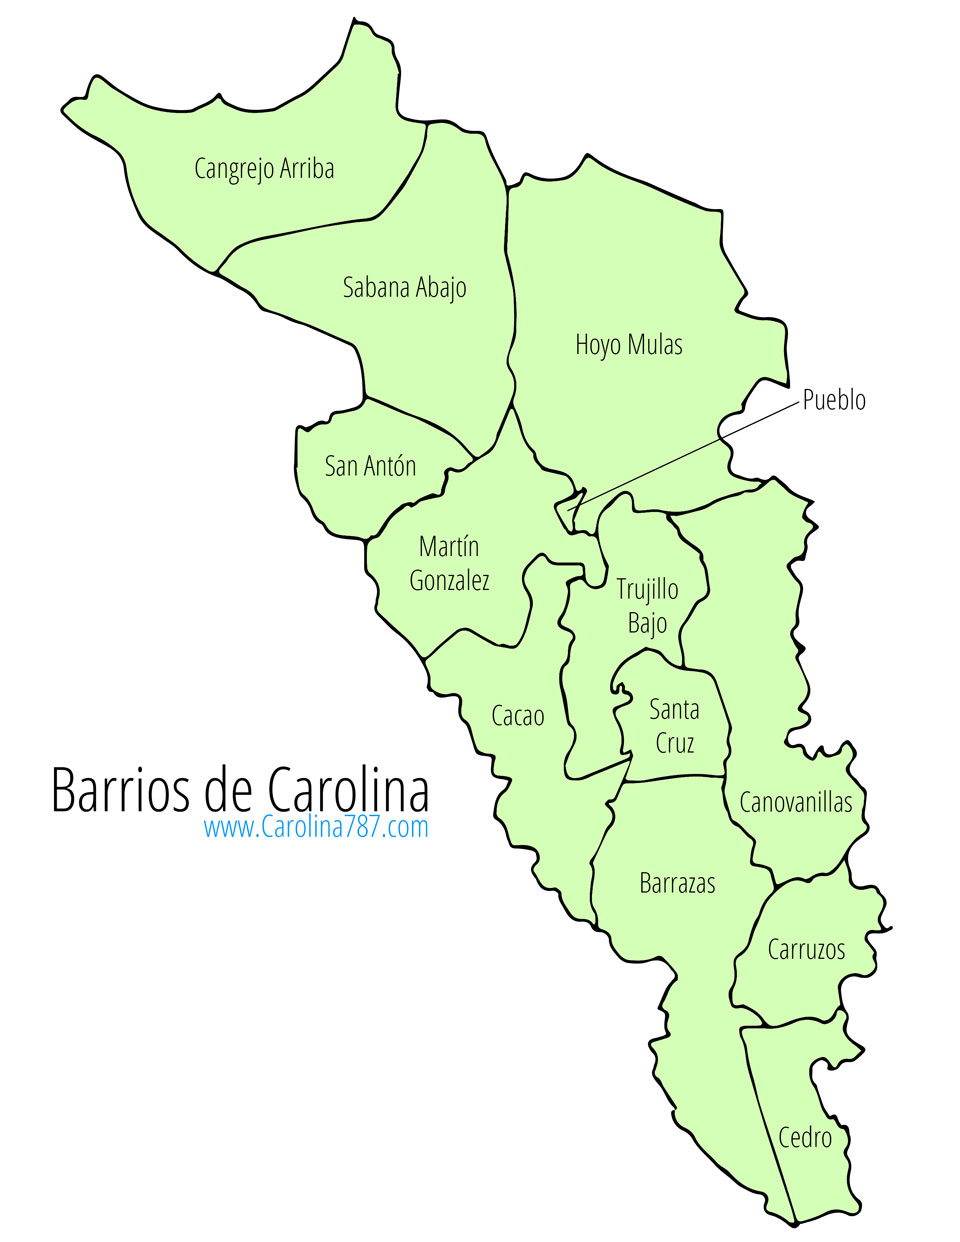 Barrios de Carolina, Puerto Rico.